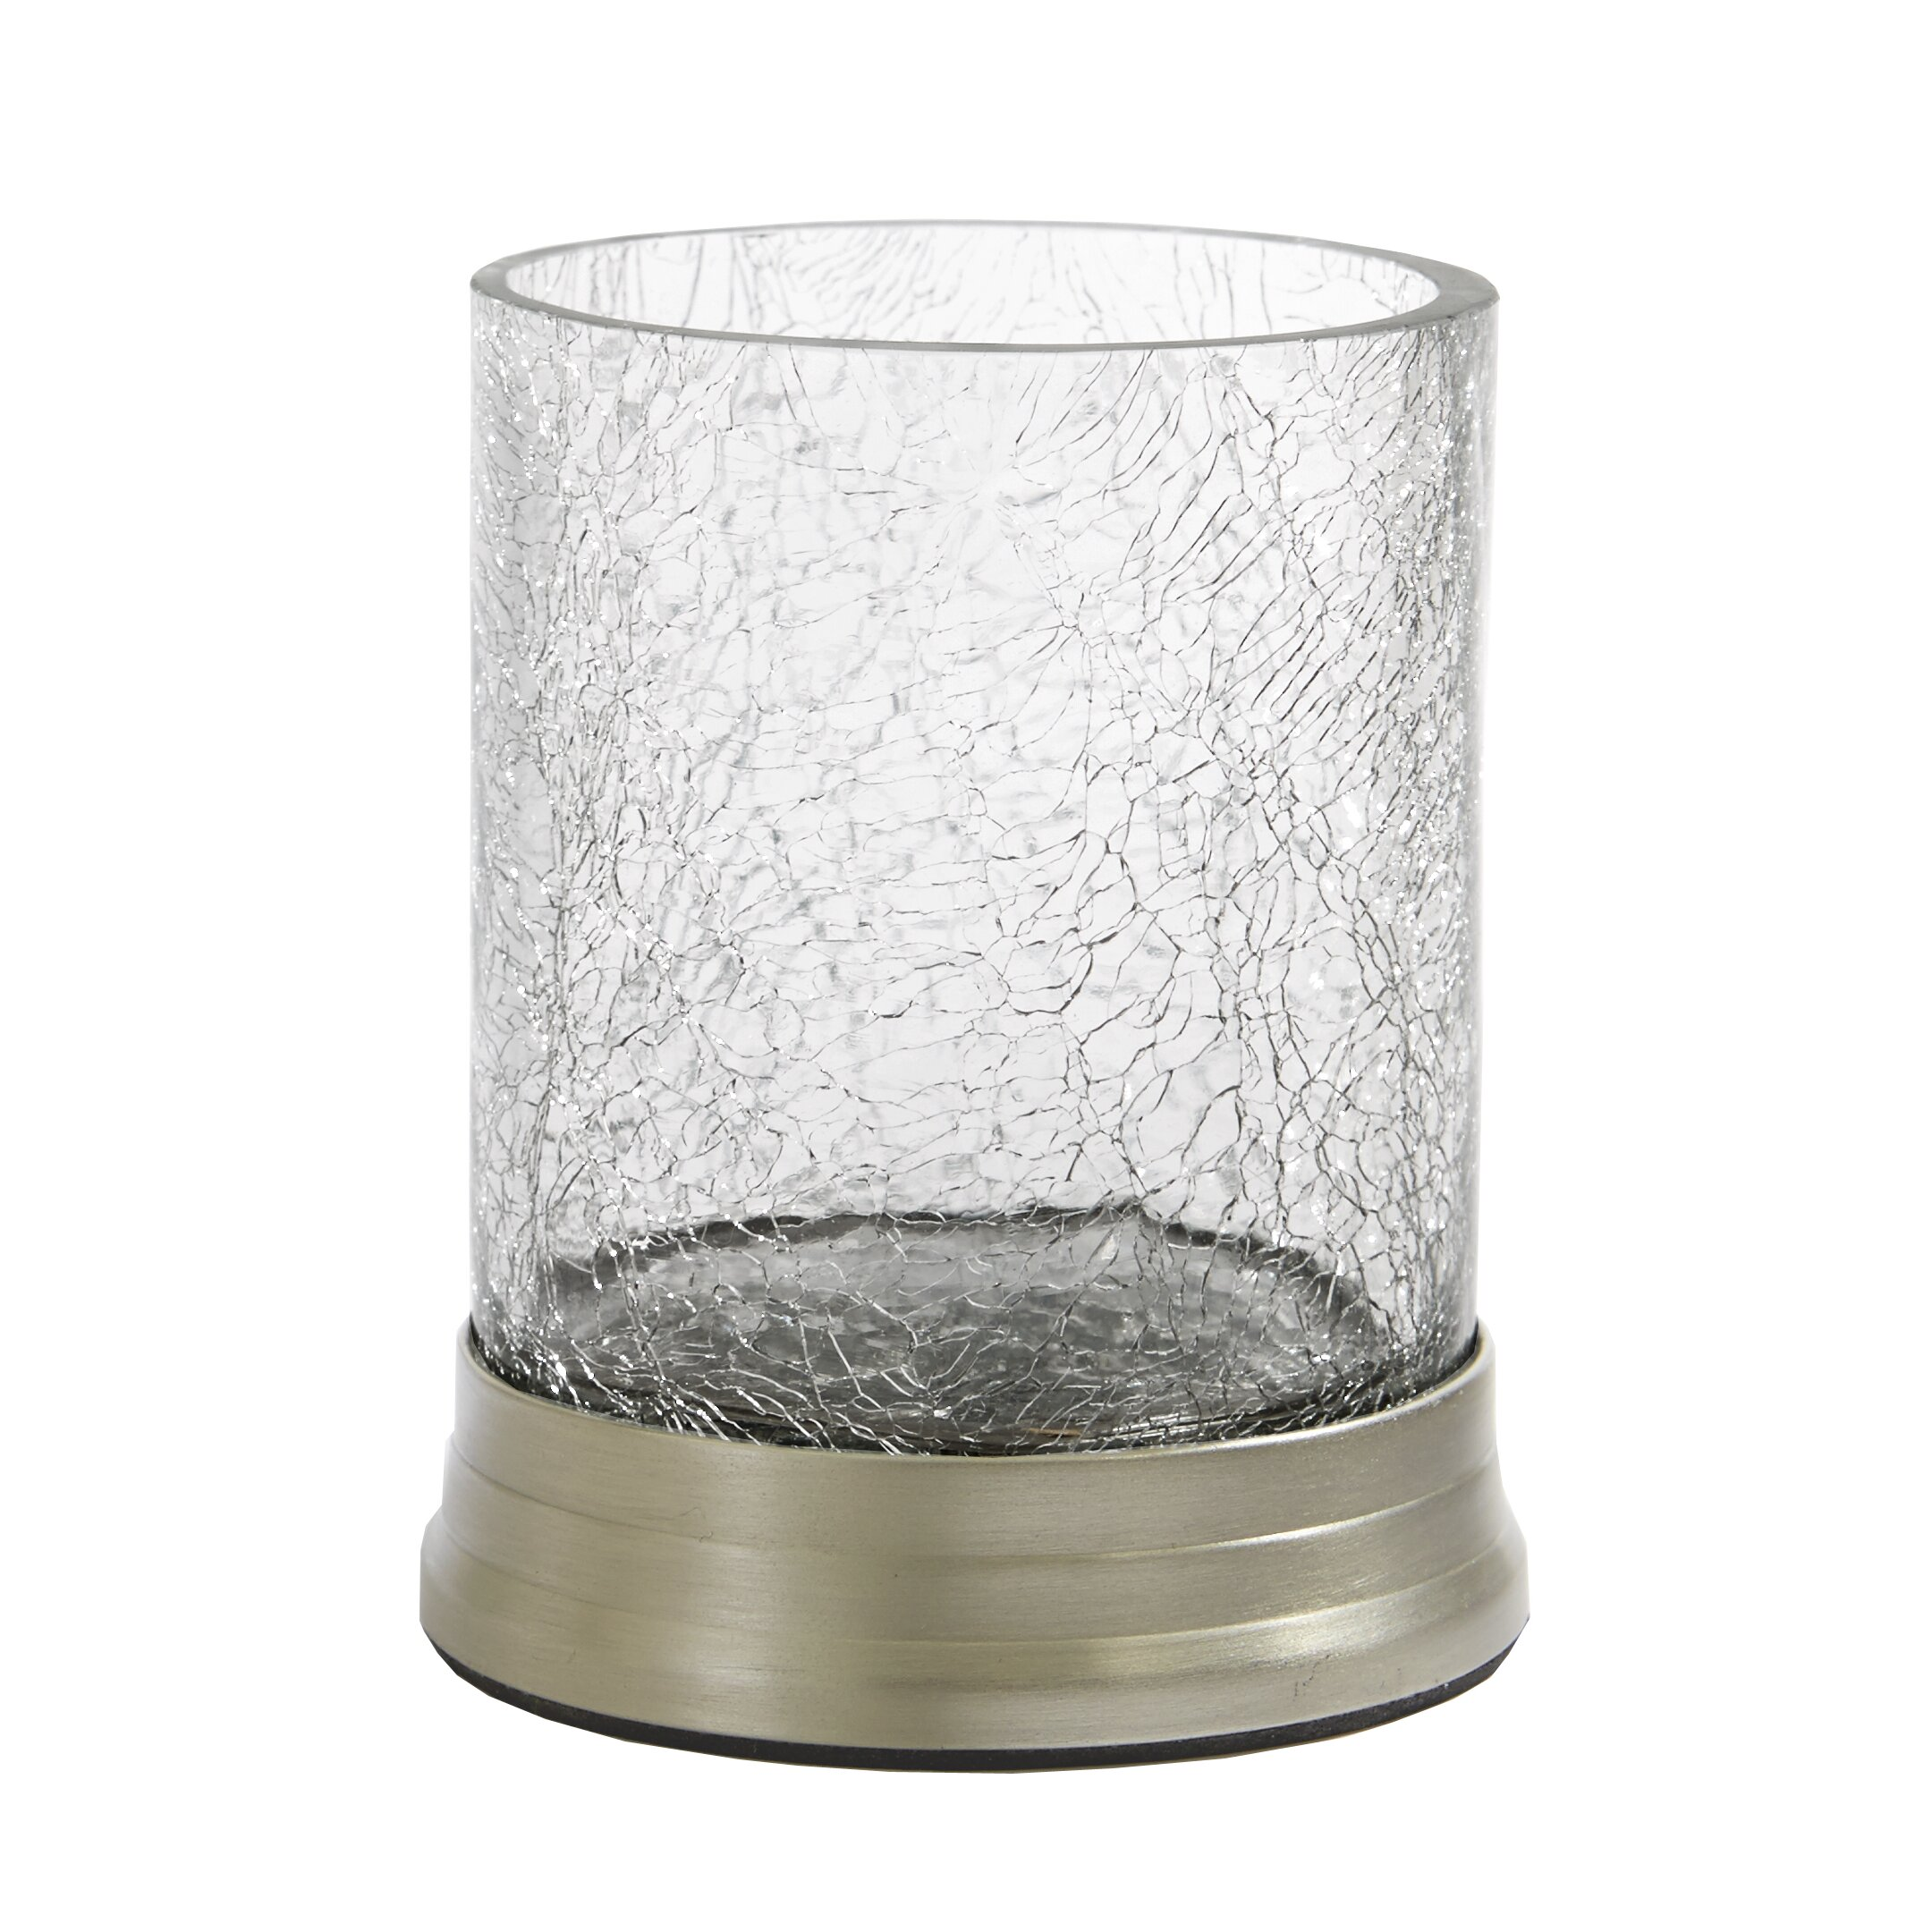 glass bathroom accessories sets. Paradigm Trends Heirloom 5 Piece Bathroom Accessory Set Reviews  Crackle Glass Accessories dact us